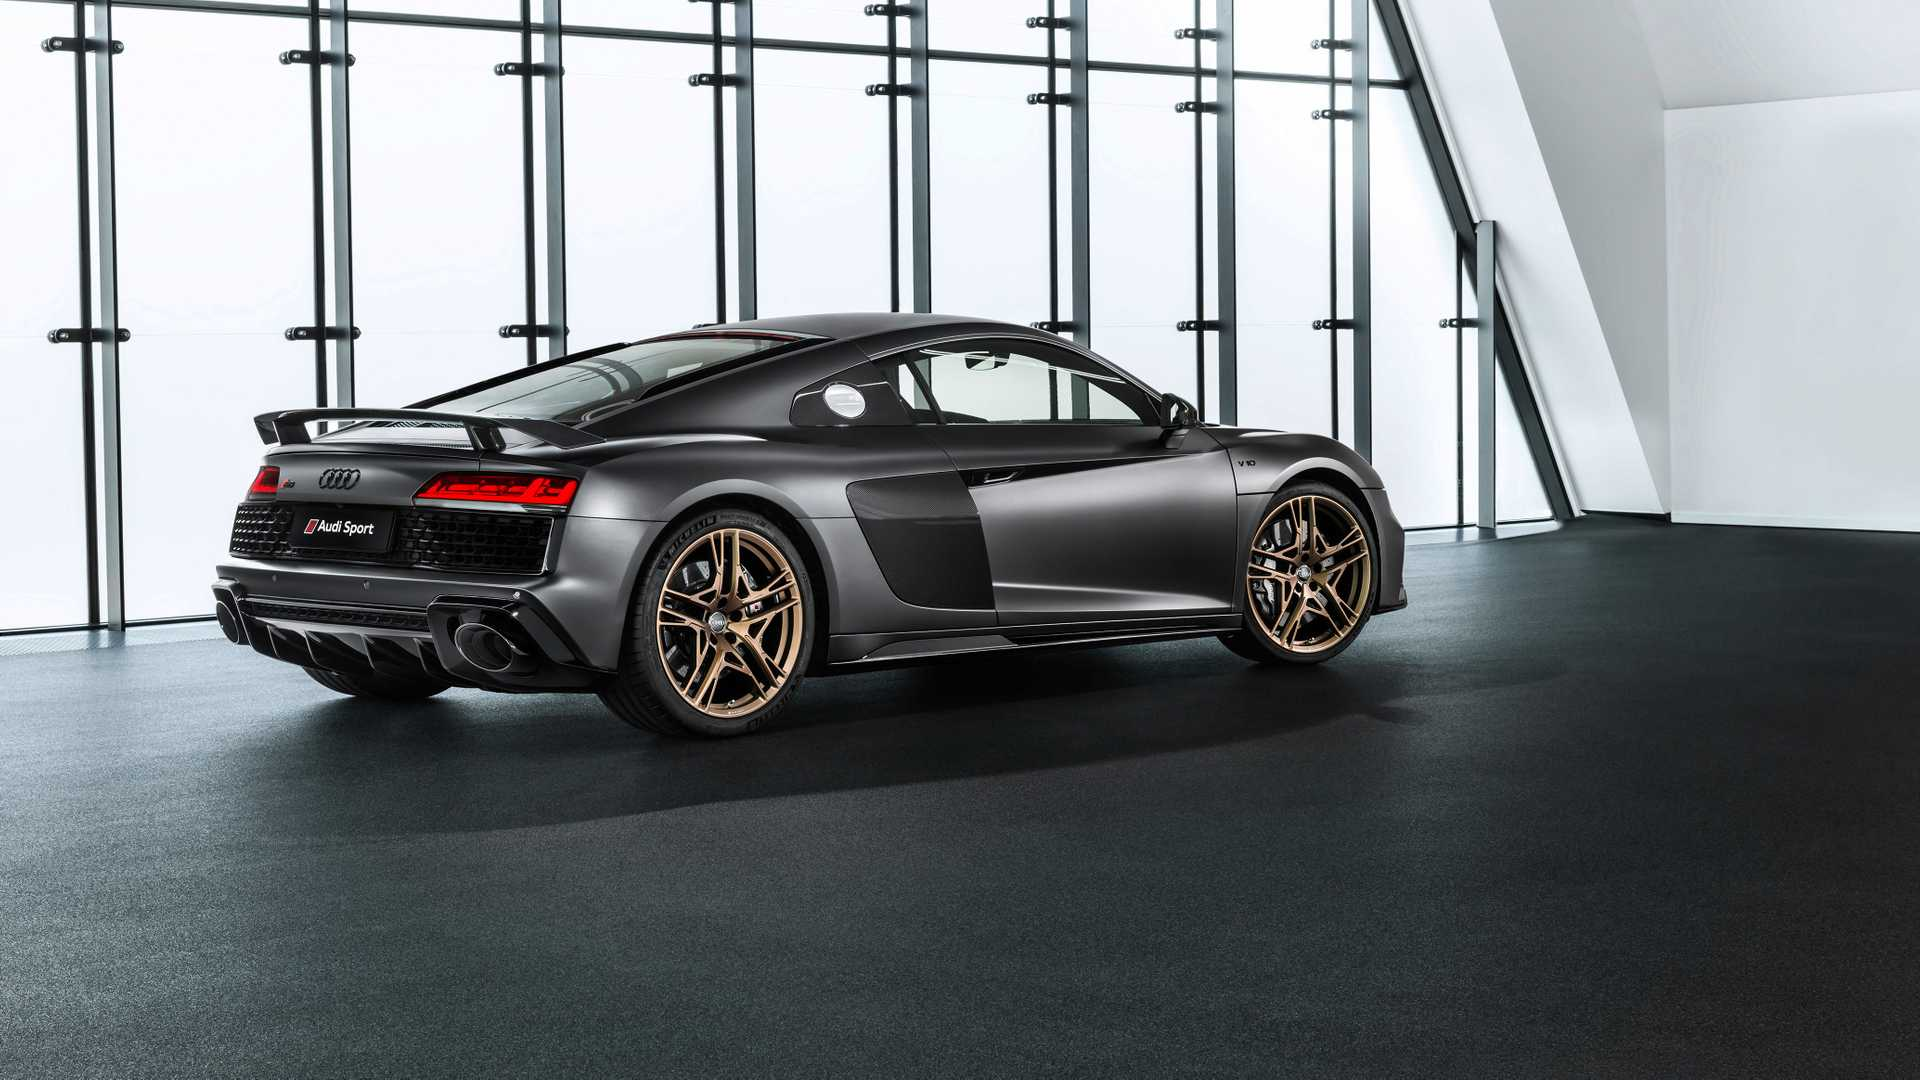 49 The Best 2020 Audi R8 Specs And Review